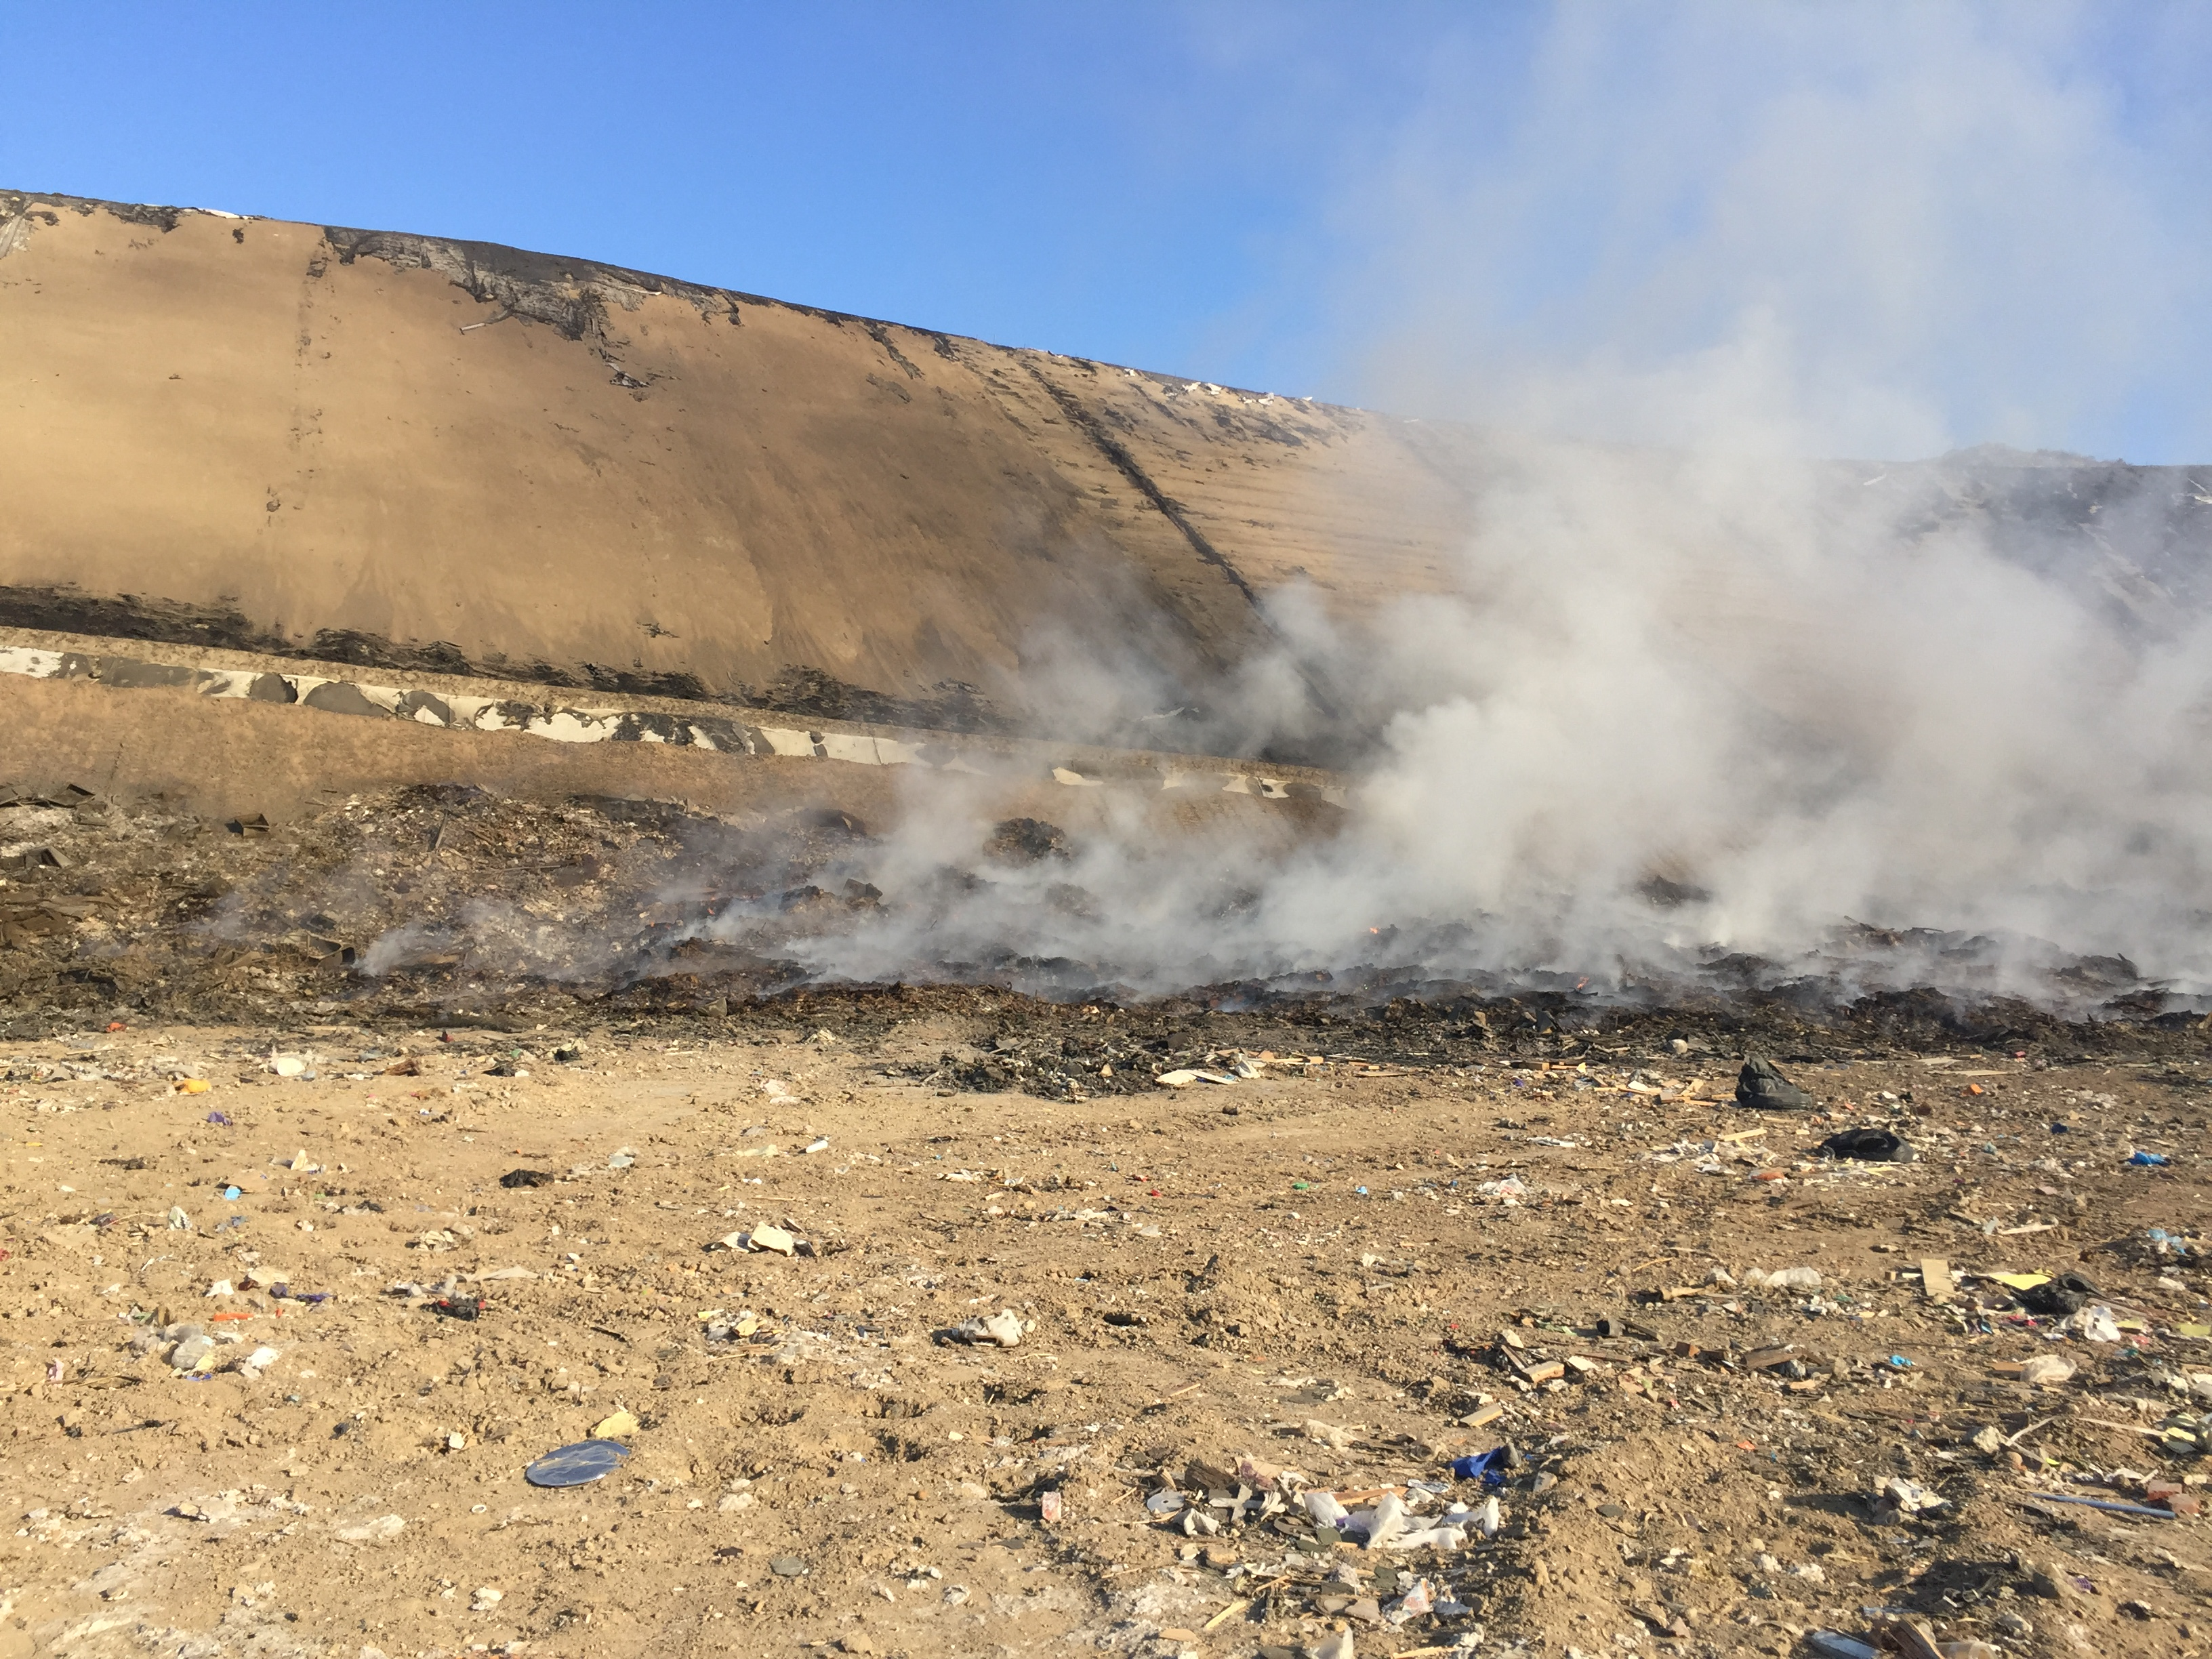 Damaged liner at the landfill with smoke